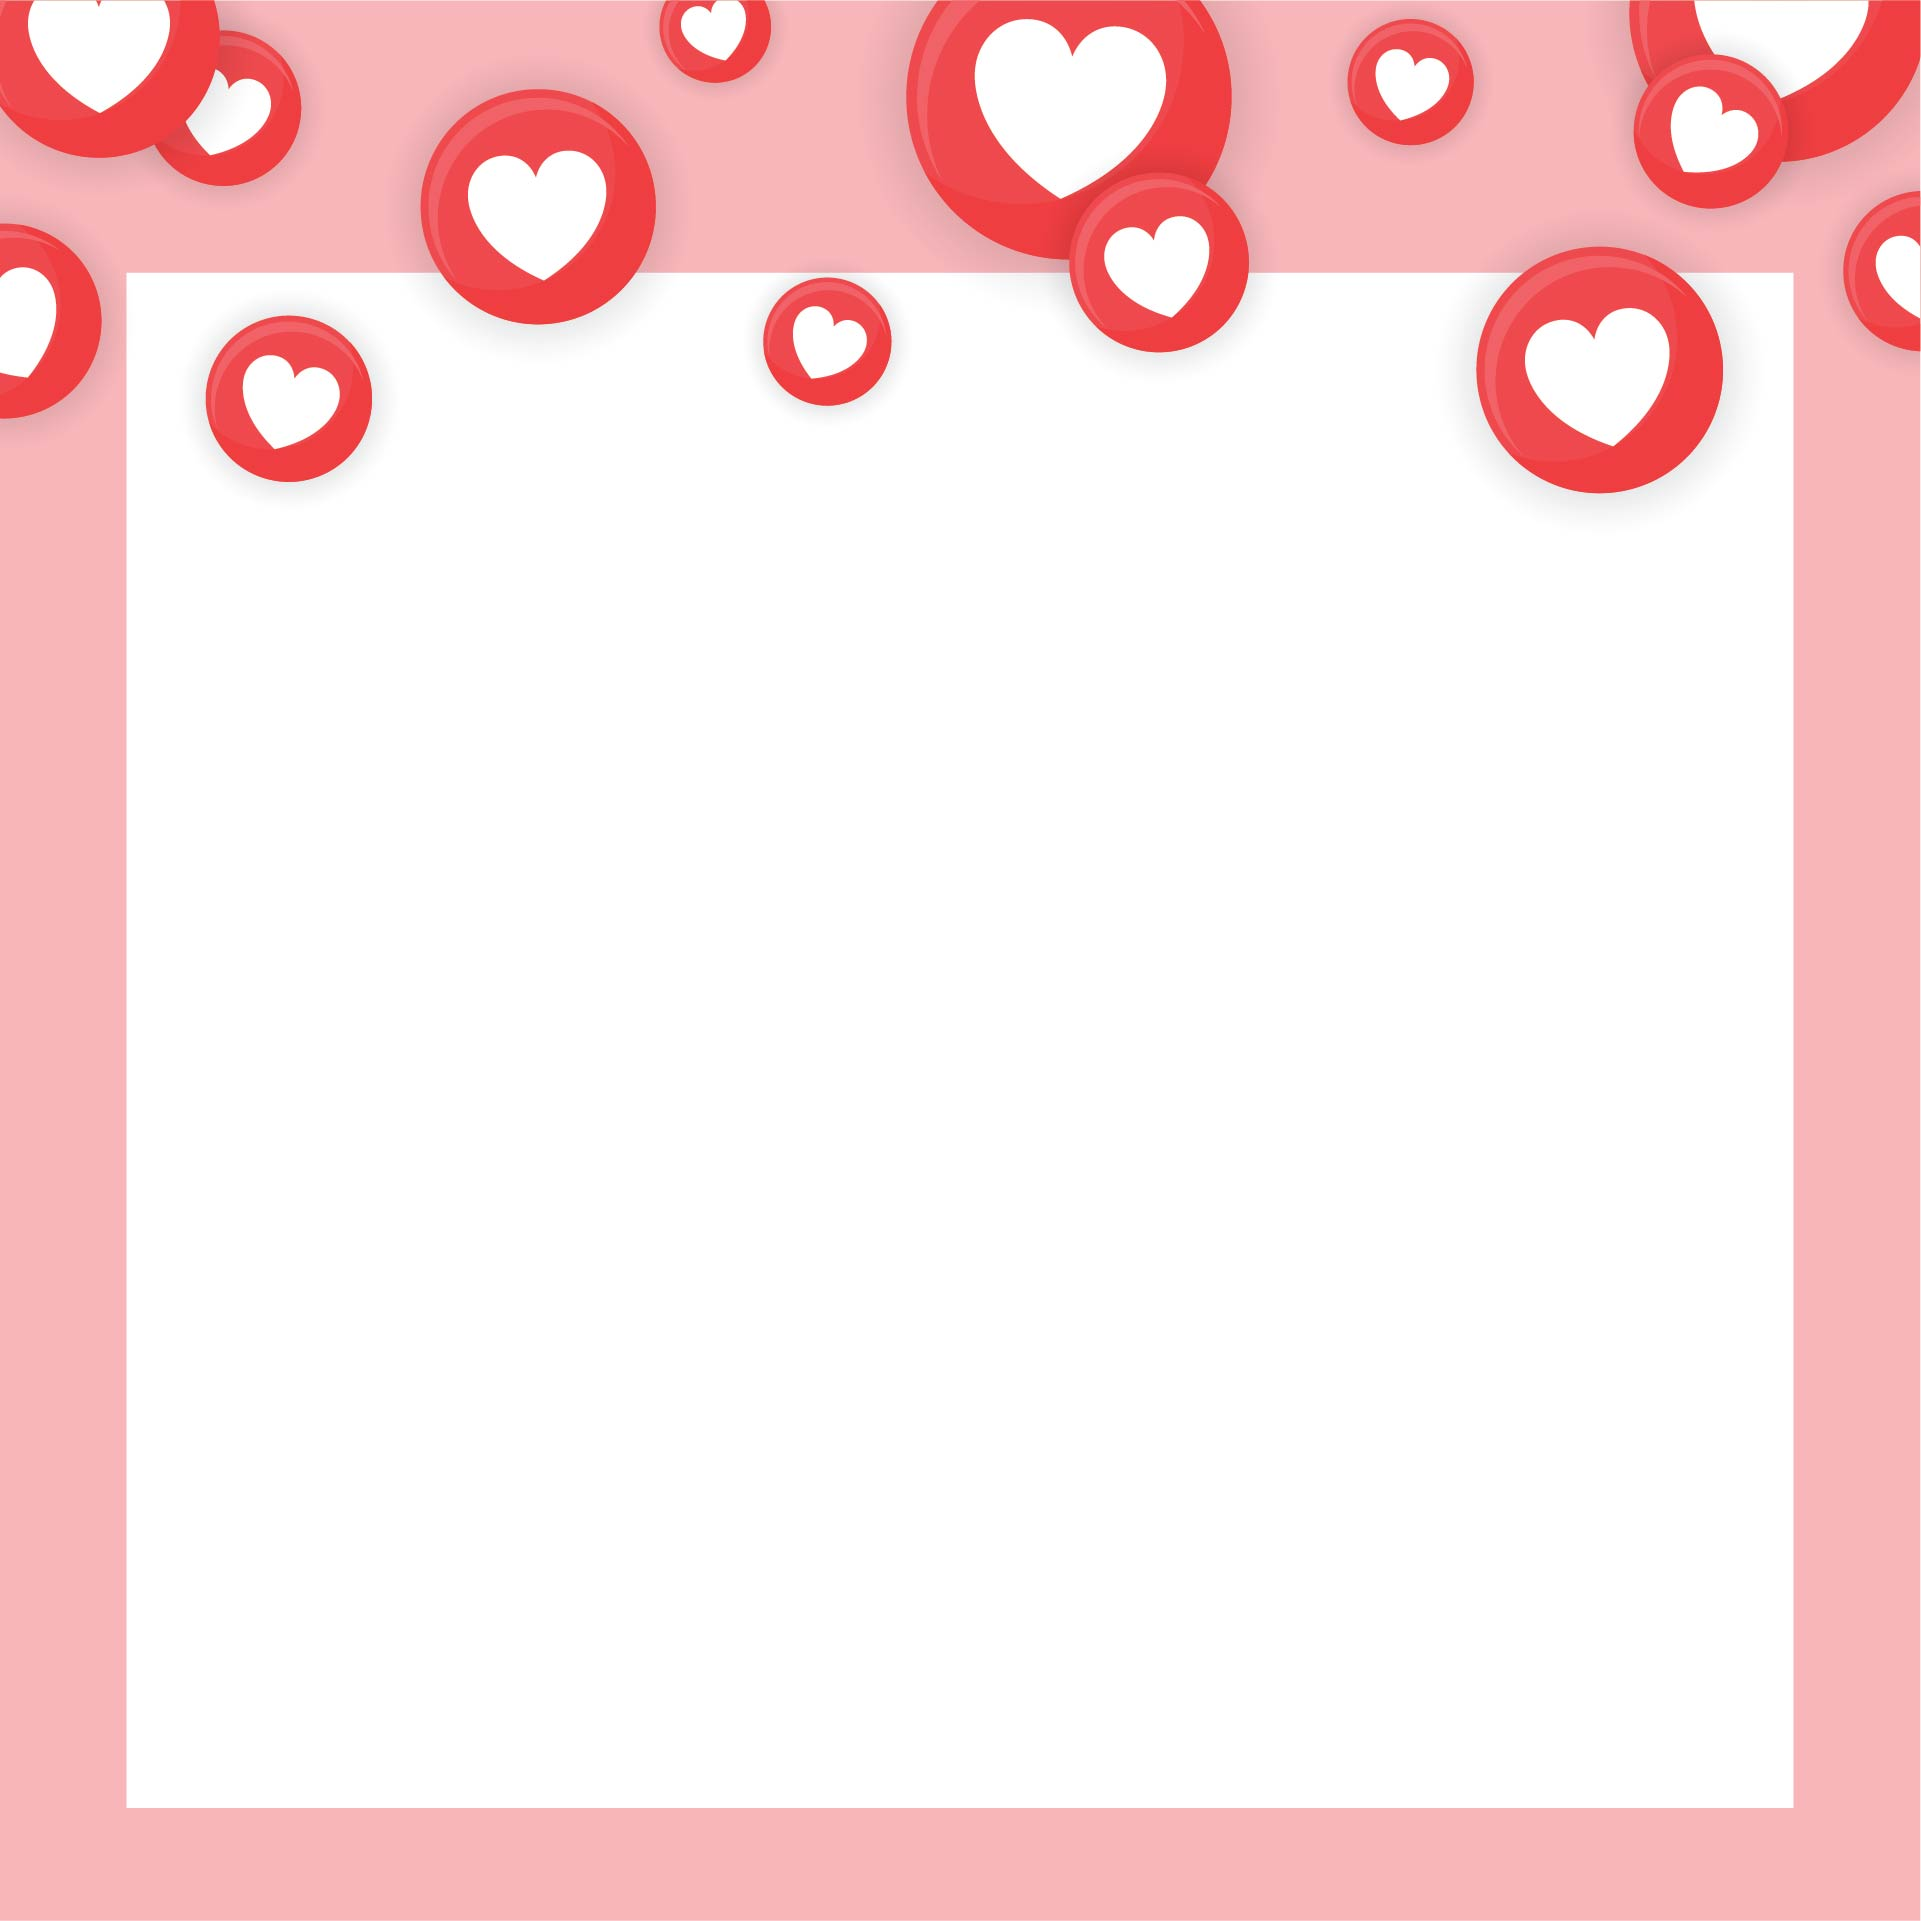 9 Best Images of Printable Valentines Day Cards Online Free – Online Printable Valentine Cards